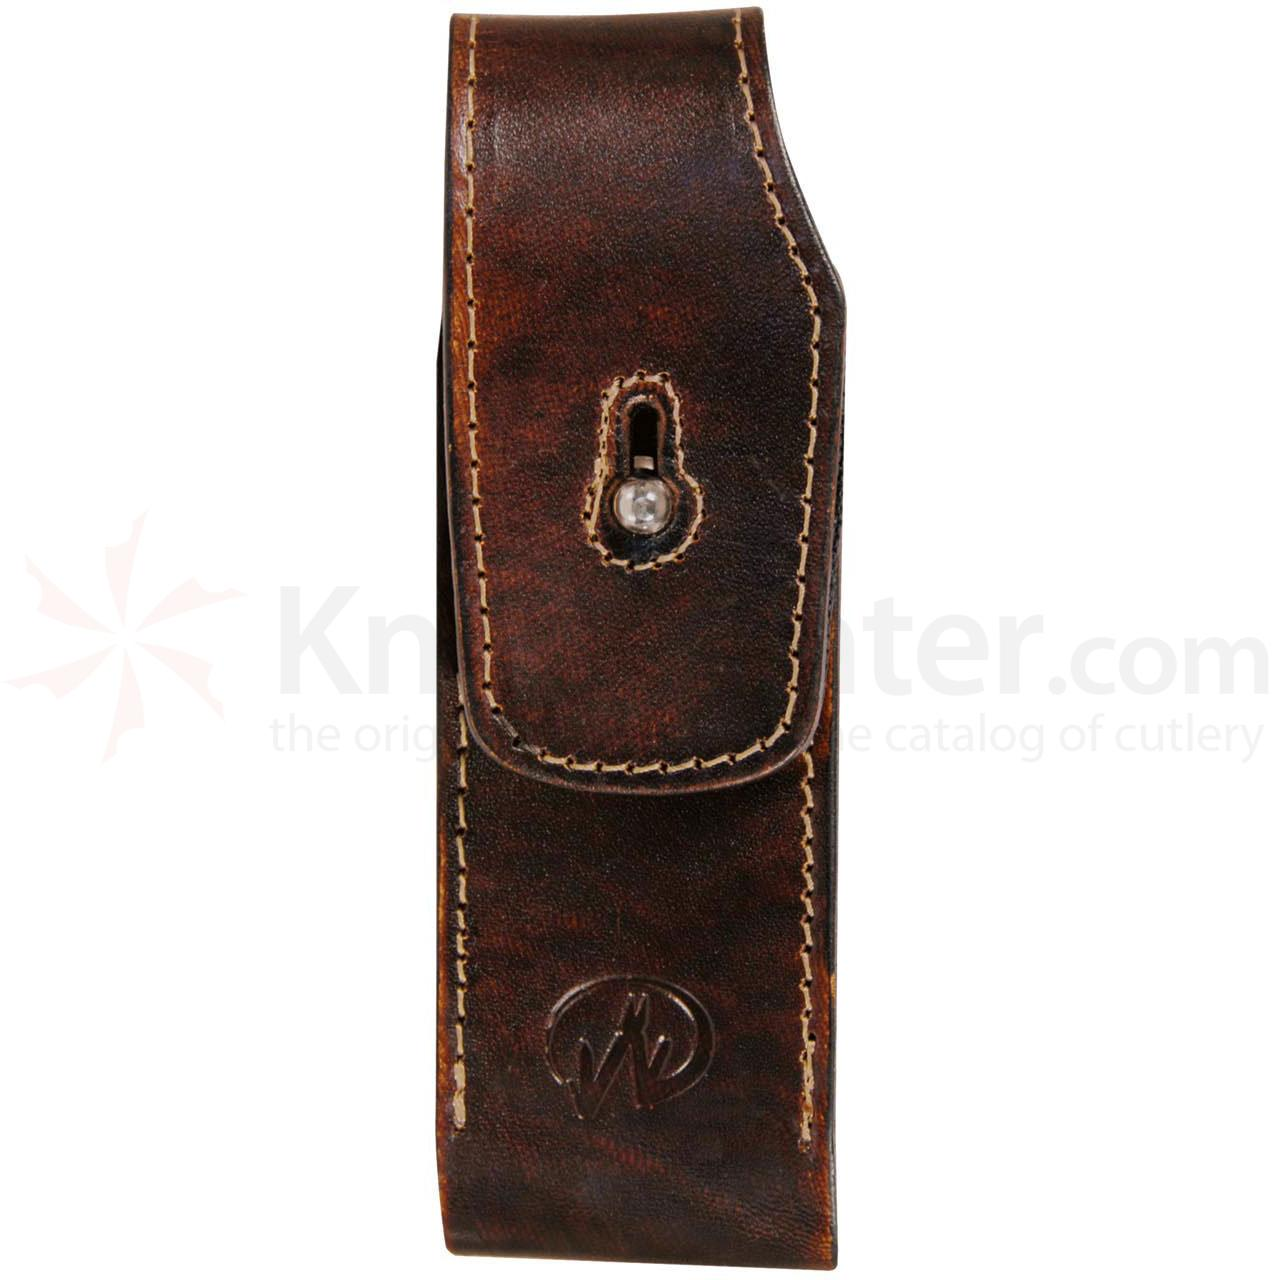 Leatherman 946500 Folding Hunting Knife Sheath - Leather